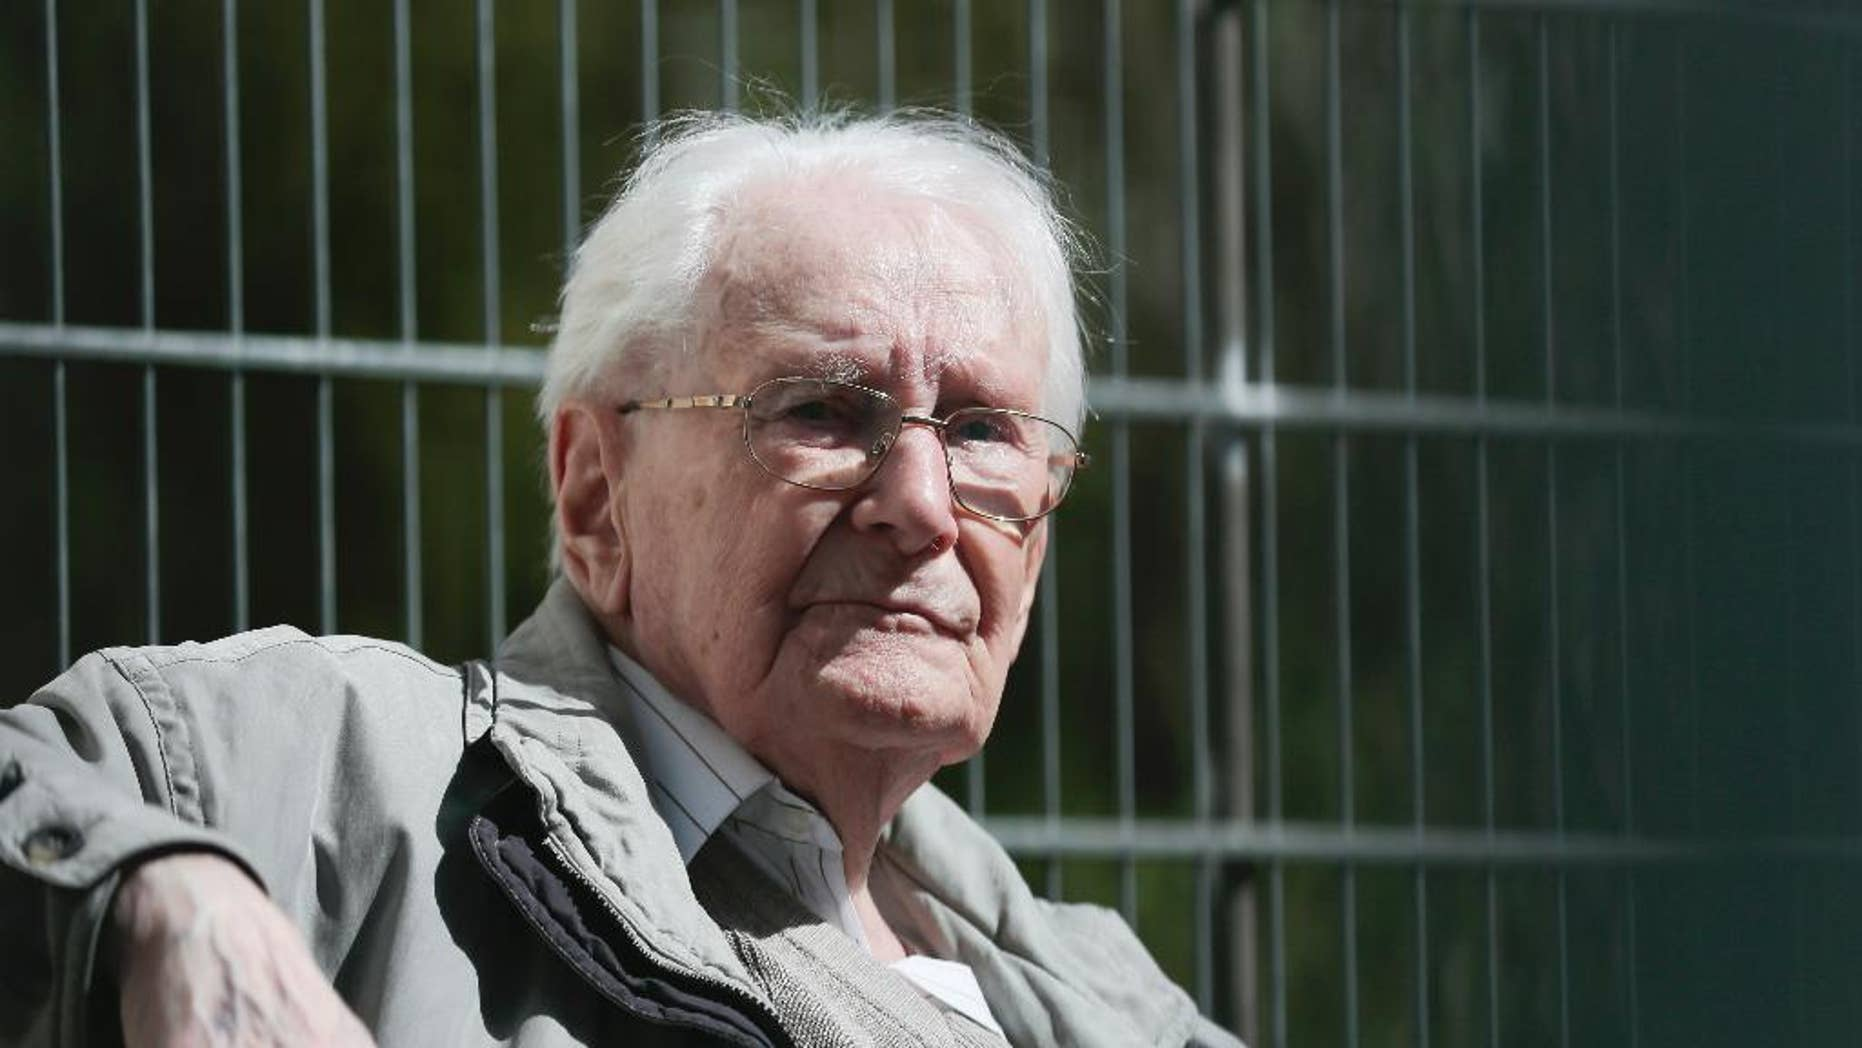 Former SS guard Oskar Groening sits in ths sun during the noon break of the trial against him in Lueneburg, northern Germany, Tuesday, April 21, 2015.  93-years-old Groening faces 300,000 counts of accessory to murder at the trial, which will test the argument that anyone who served as a guard at a Nazi death camp was complicit in what happened there. Groening said he bears a share of the moral guilt for atrocities at the camp, but told judges it is up to them to decide whether he deserves to be convicted as an accessory to murder.  (AP Photo/Markus Schreiber)